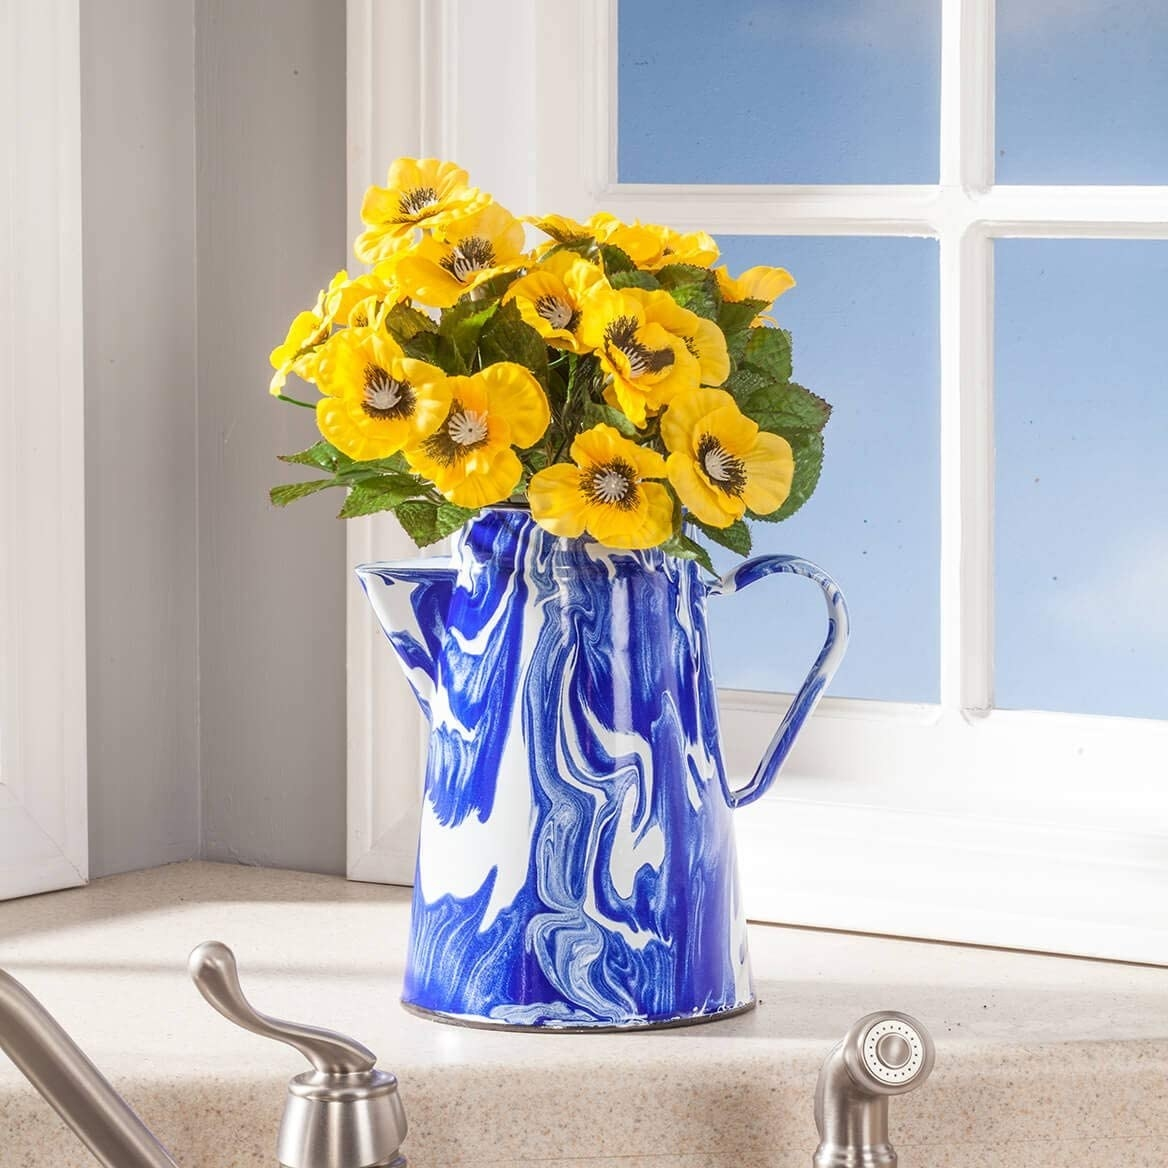 Tall enamel coffee pot with a blue and white marble-like pattern and flowers in it